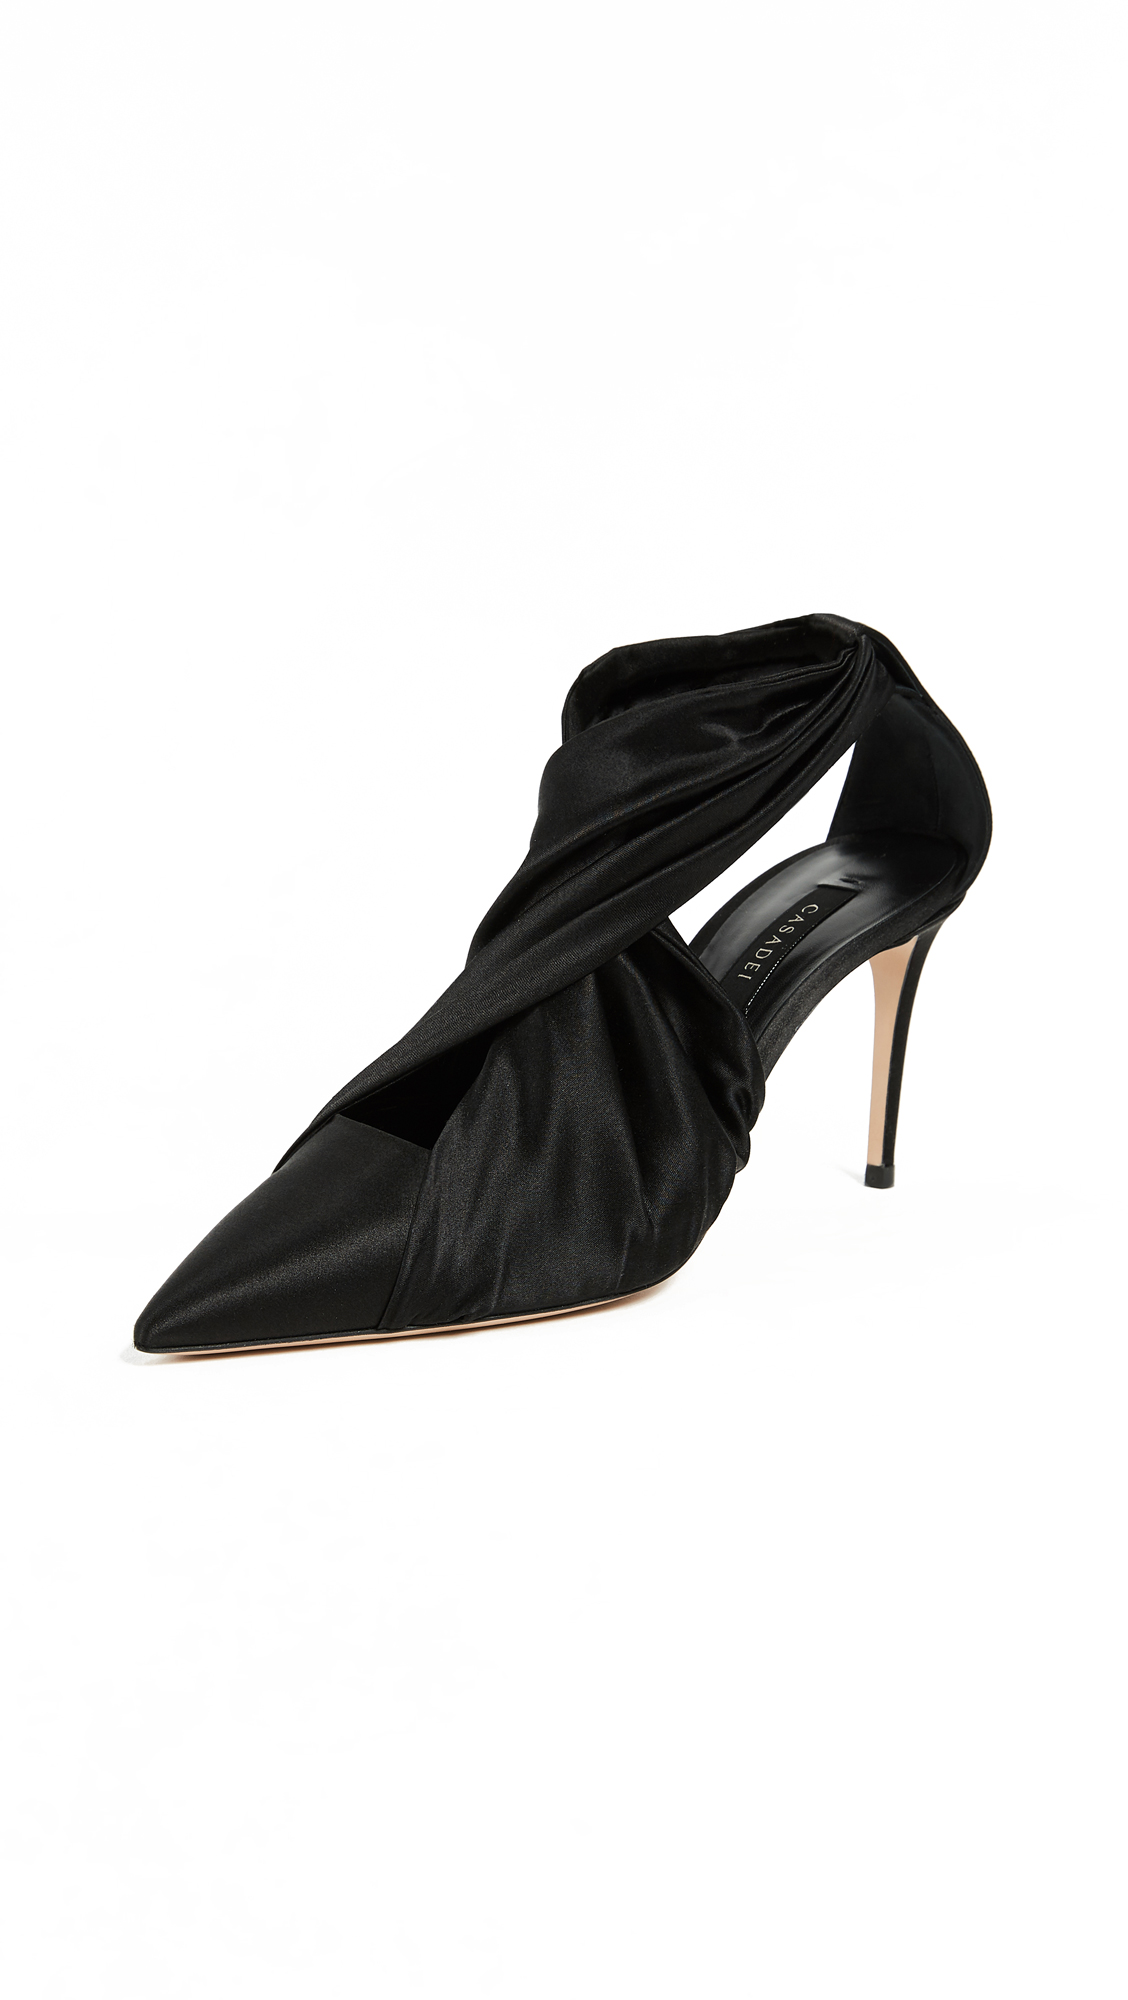 Casadei Sophia 80mm Pumps - Nero